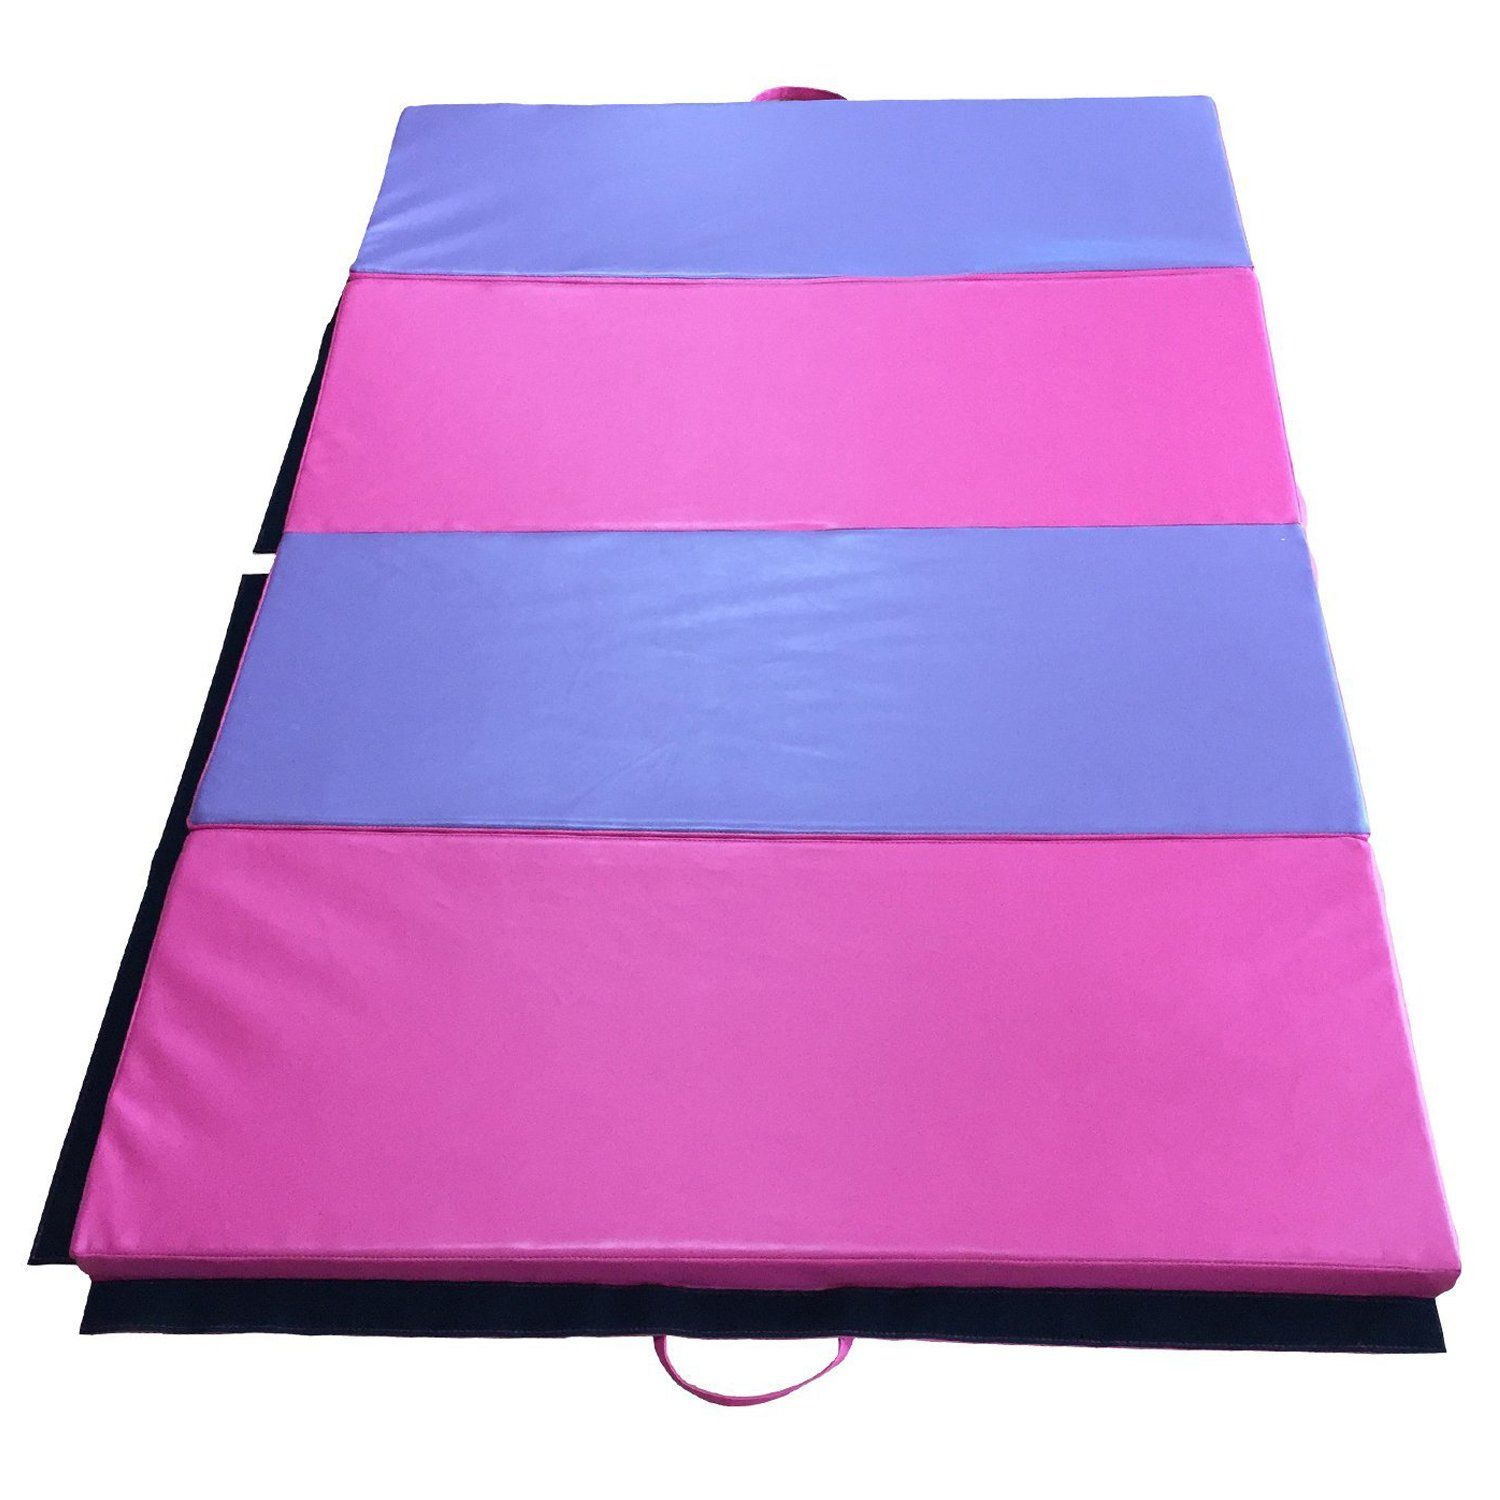 blue aerobics en stretching yoga gymnastics ip mats gym exercise mat diy folding